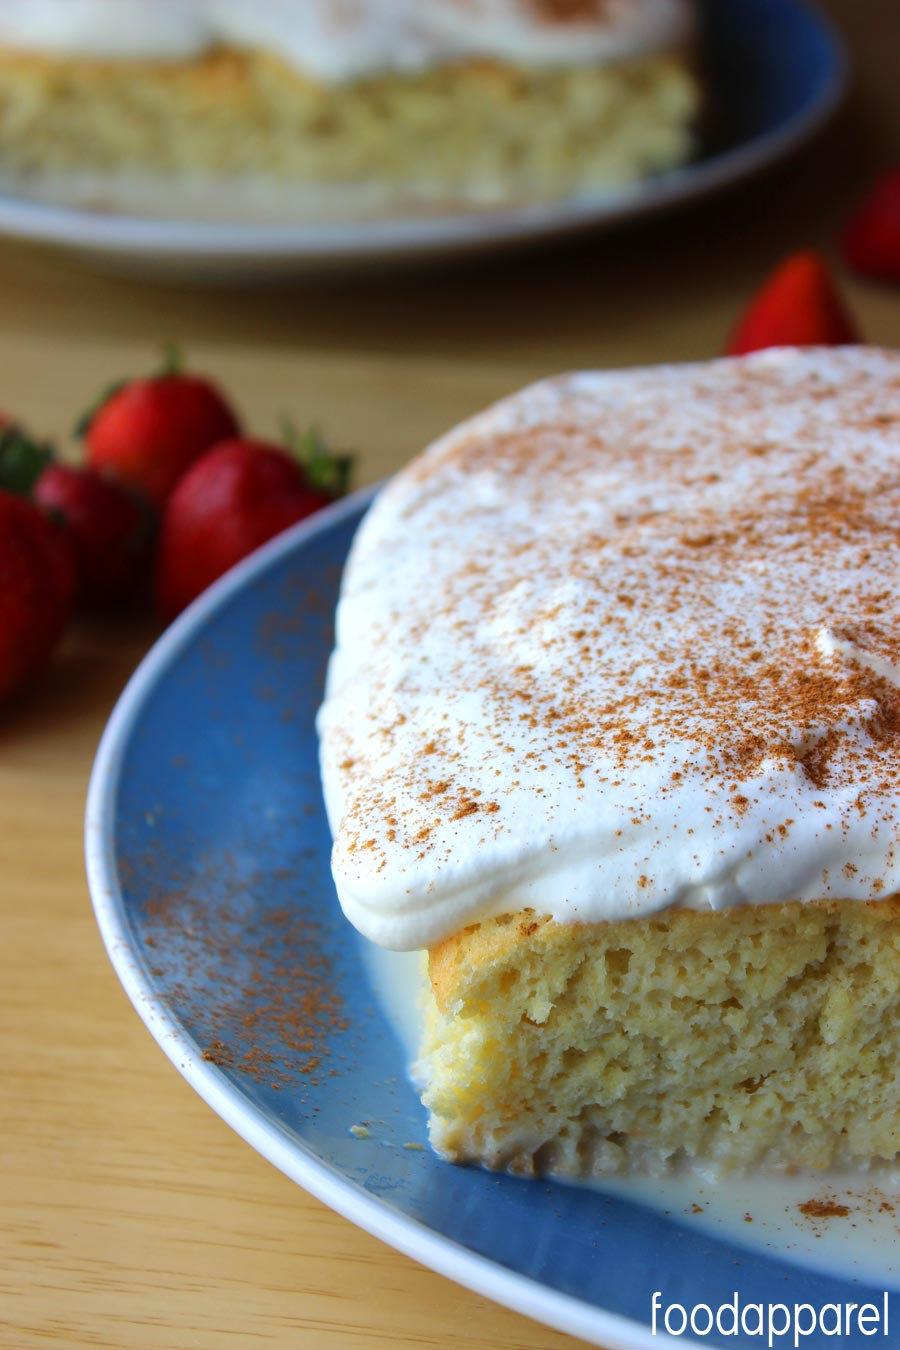 Authentic Pastel de Tres Leches (Tres Leches Cake) Recipe. Always gets rave reviews!